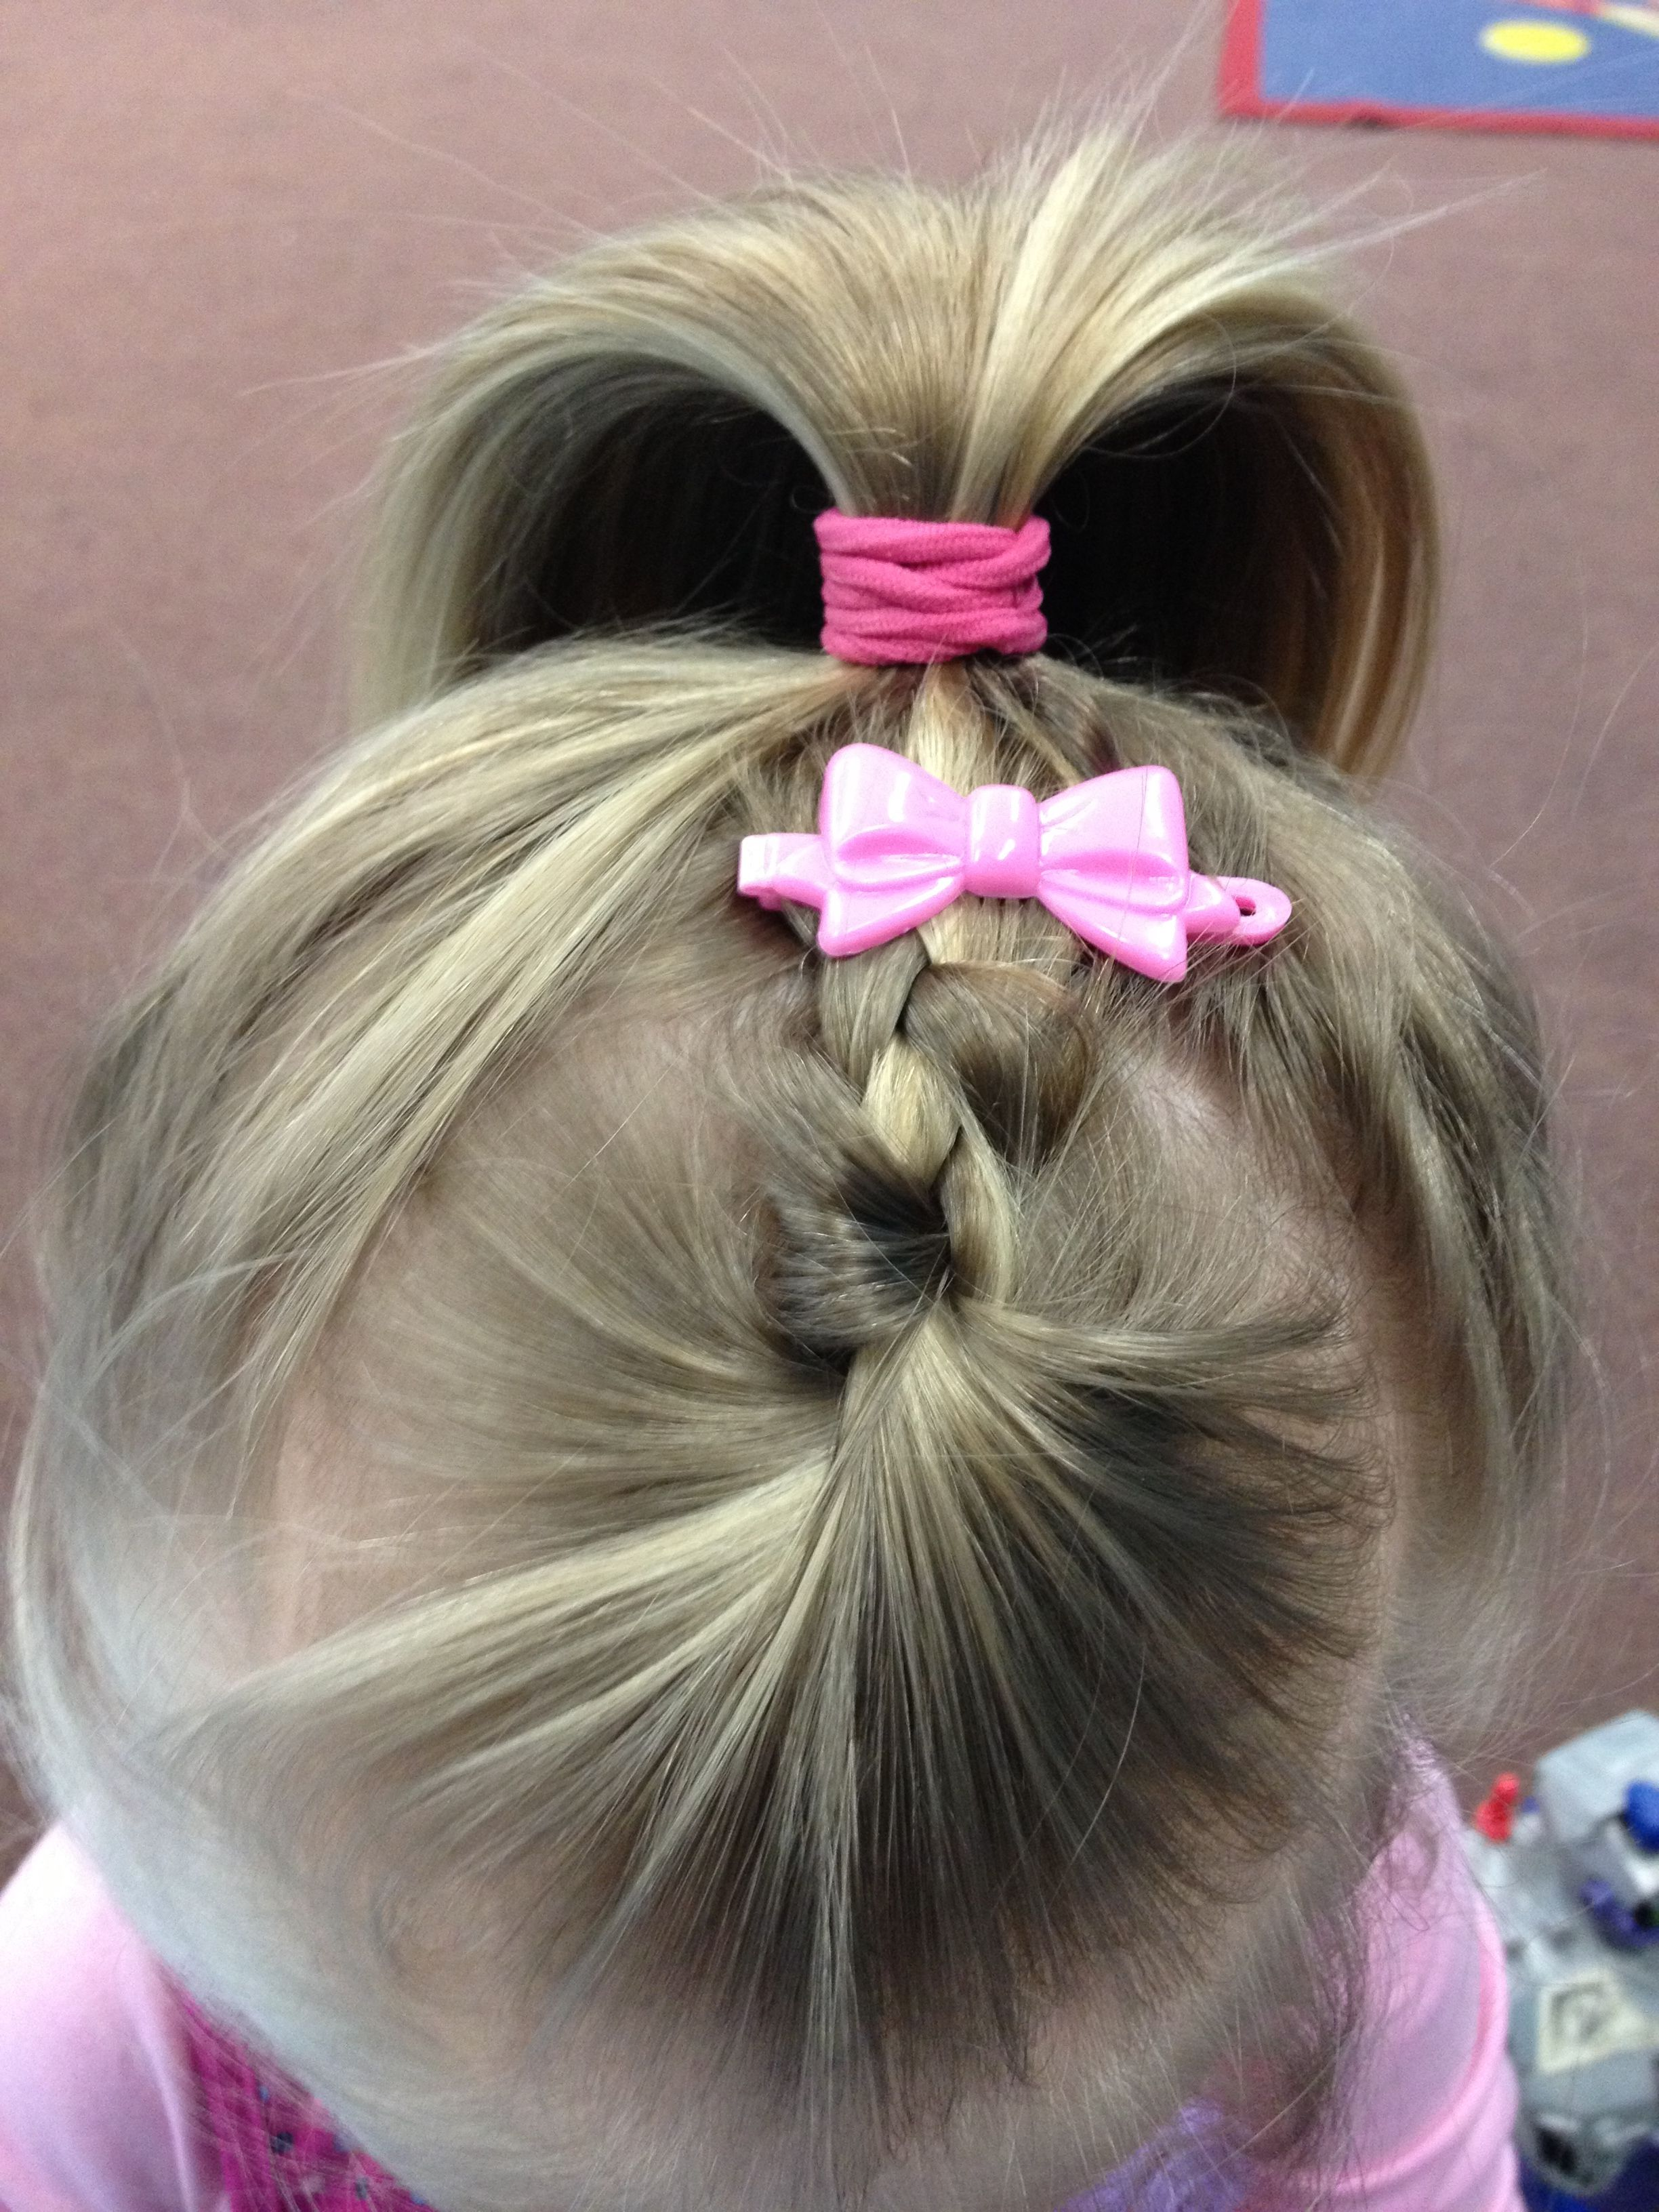 Little Girls Hairstyle When The Bangs Are Growing Out And Are Always In Her Eyes I Did This Today Growing Out Bangs Girl Hairstyles Fringe Hairstyles